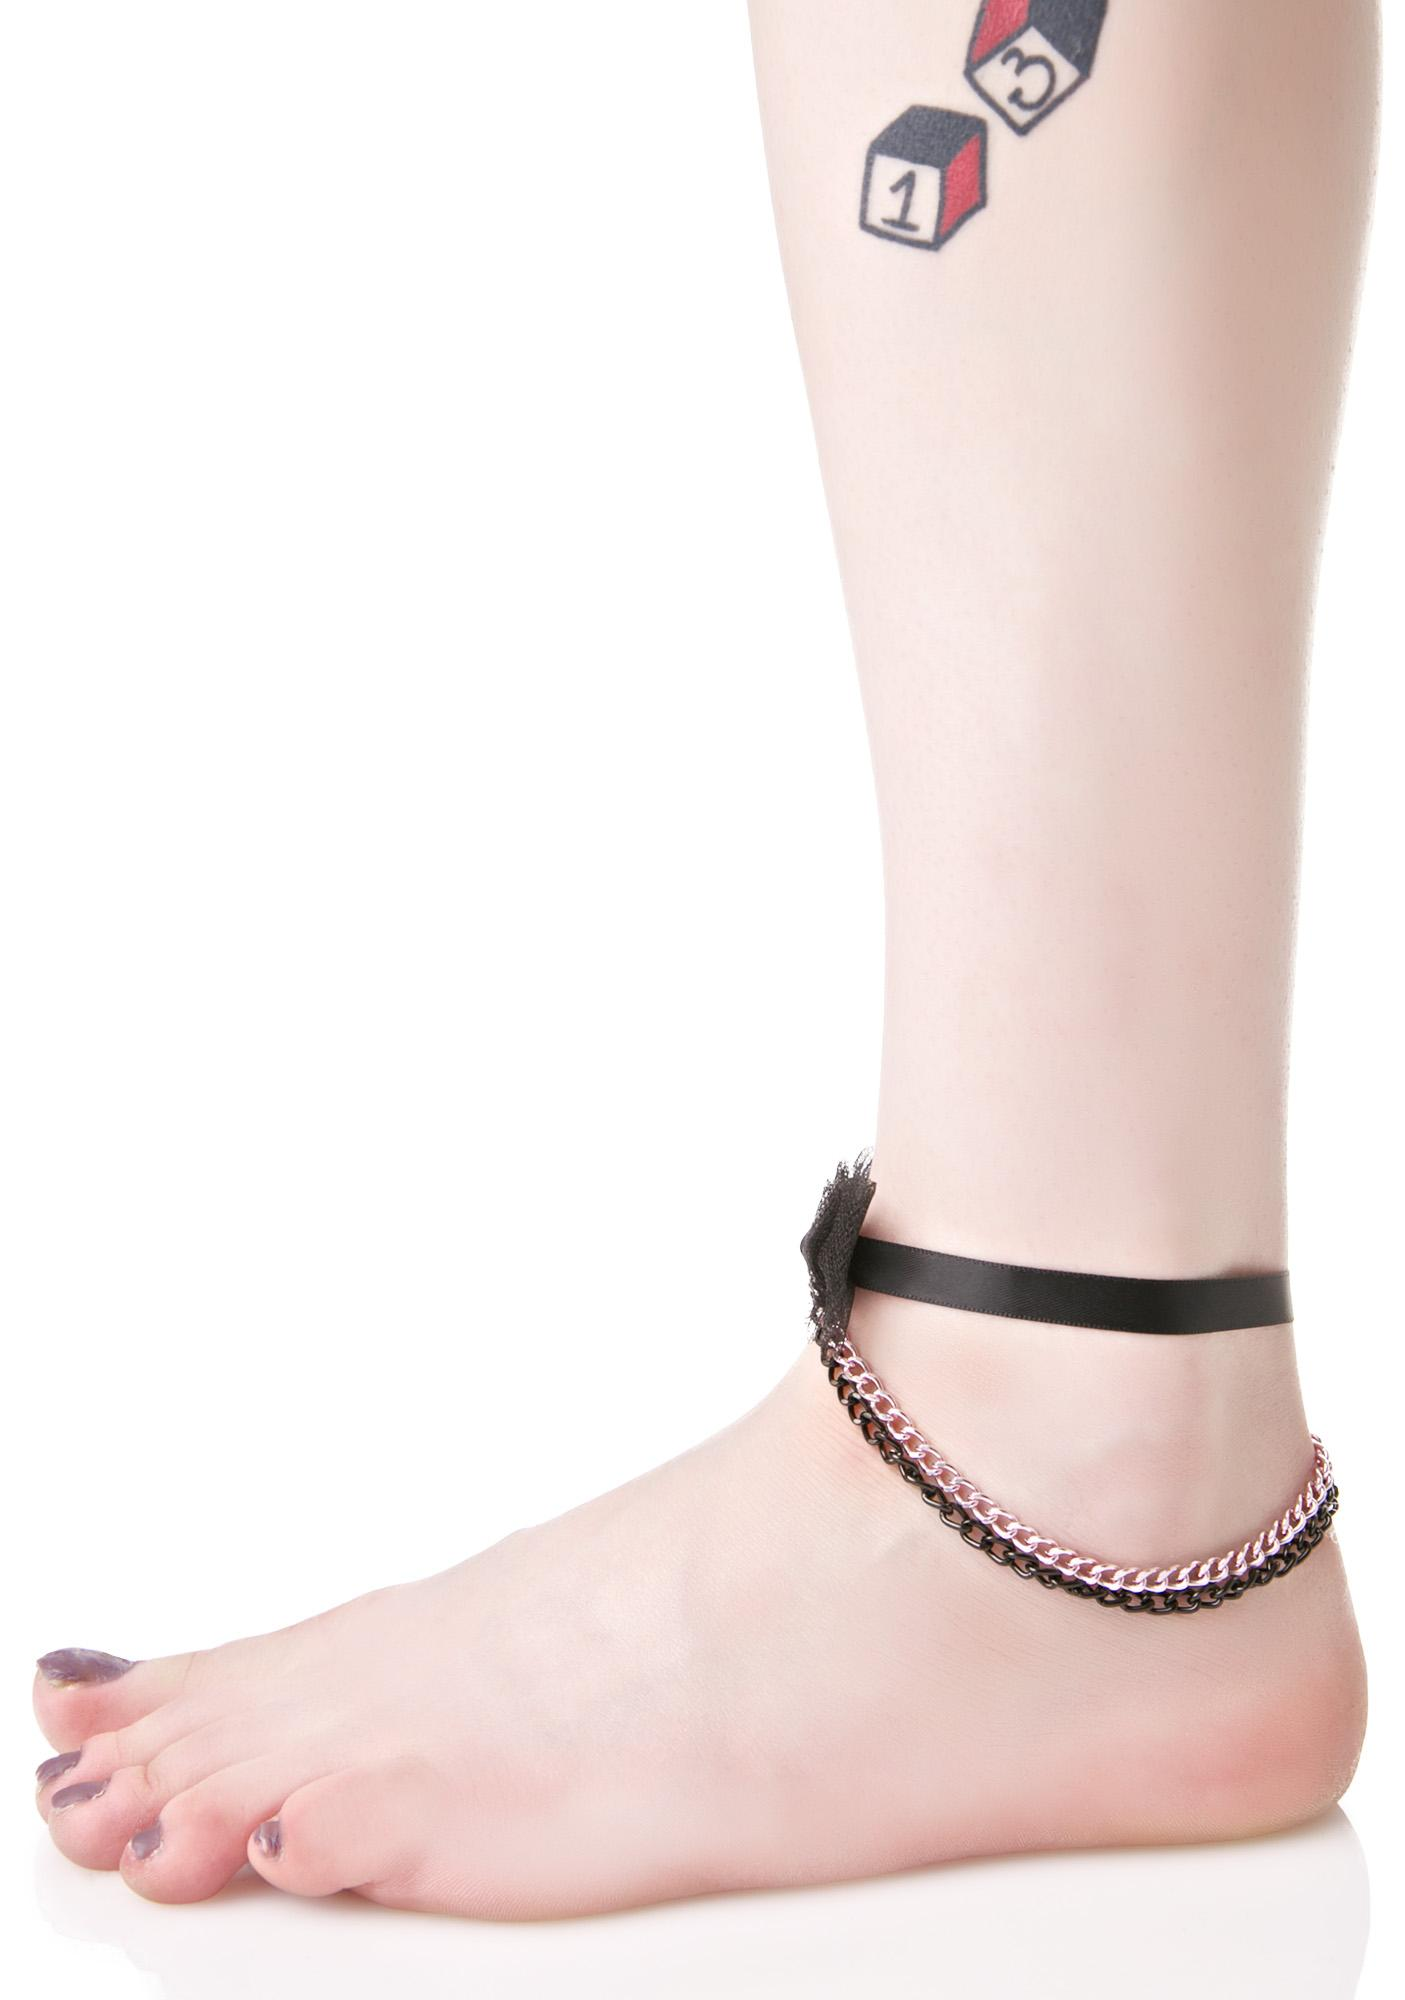 anklets lanka myshop shop lk your anklet fashion sri website shopping online